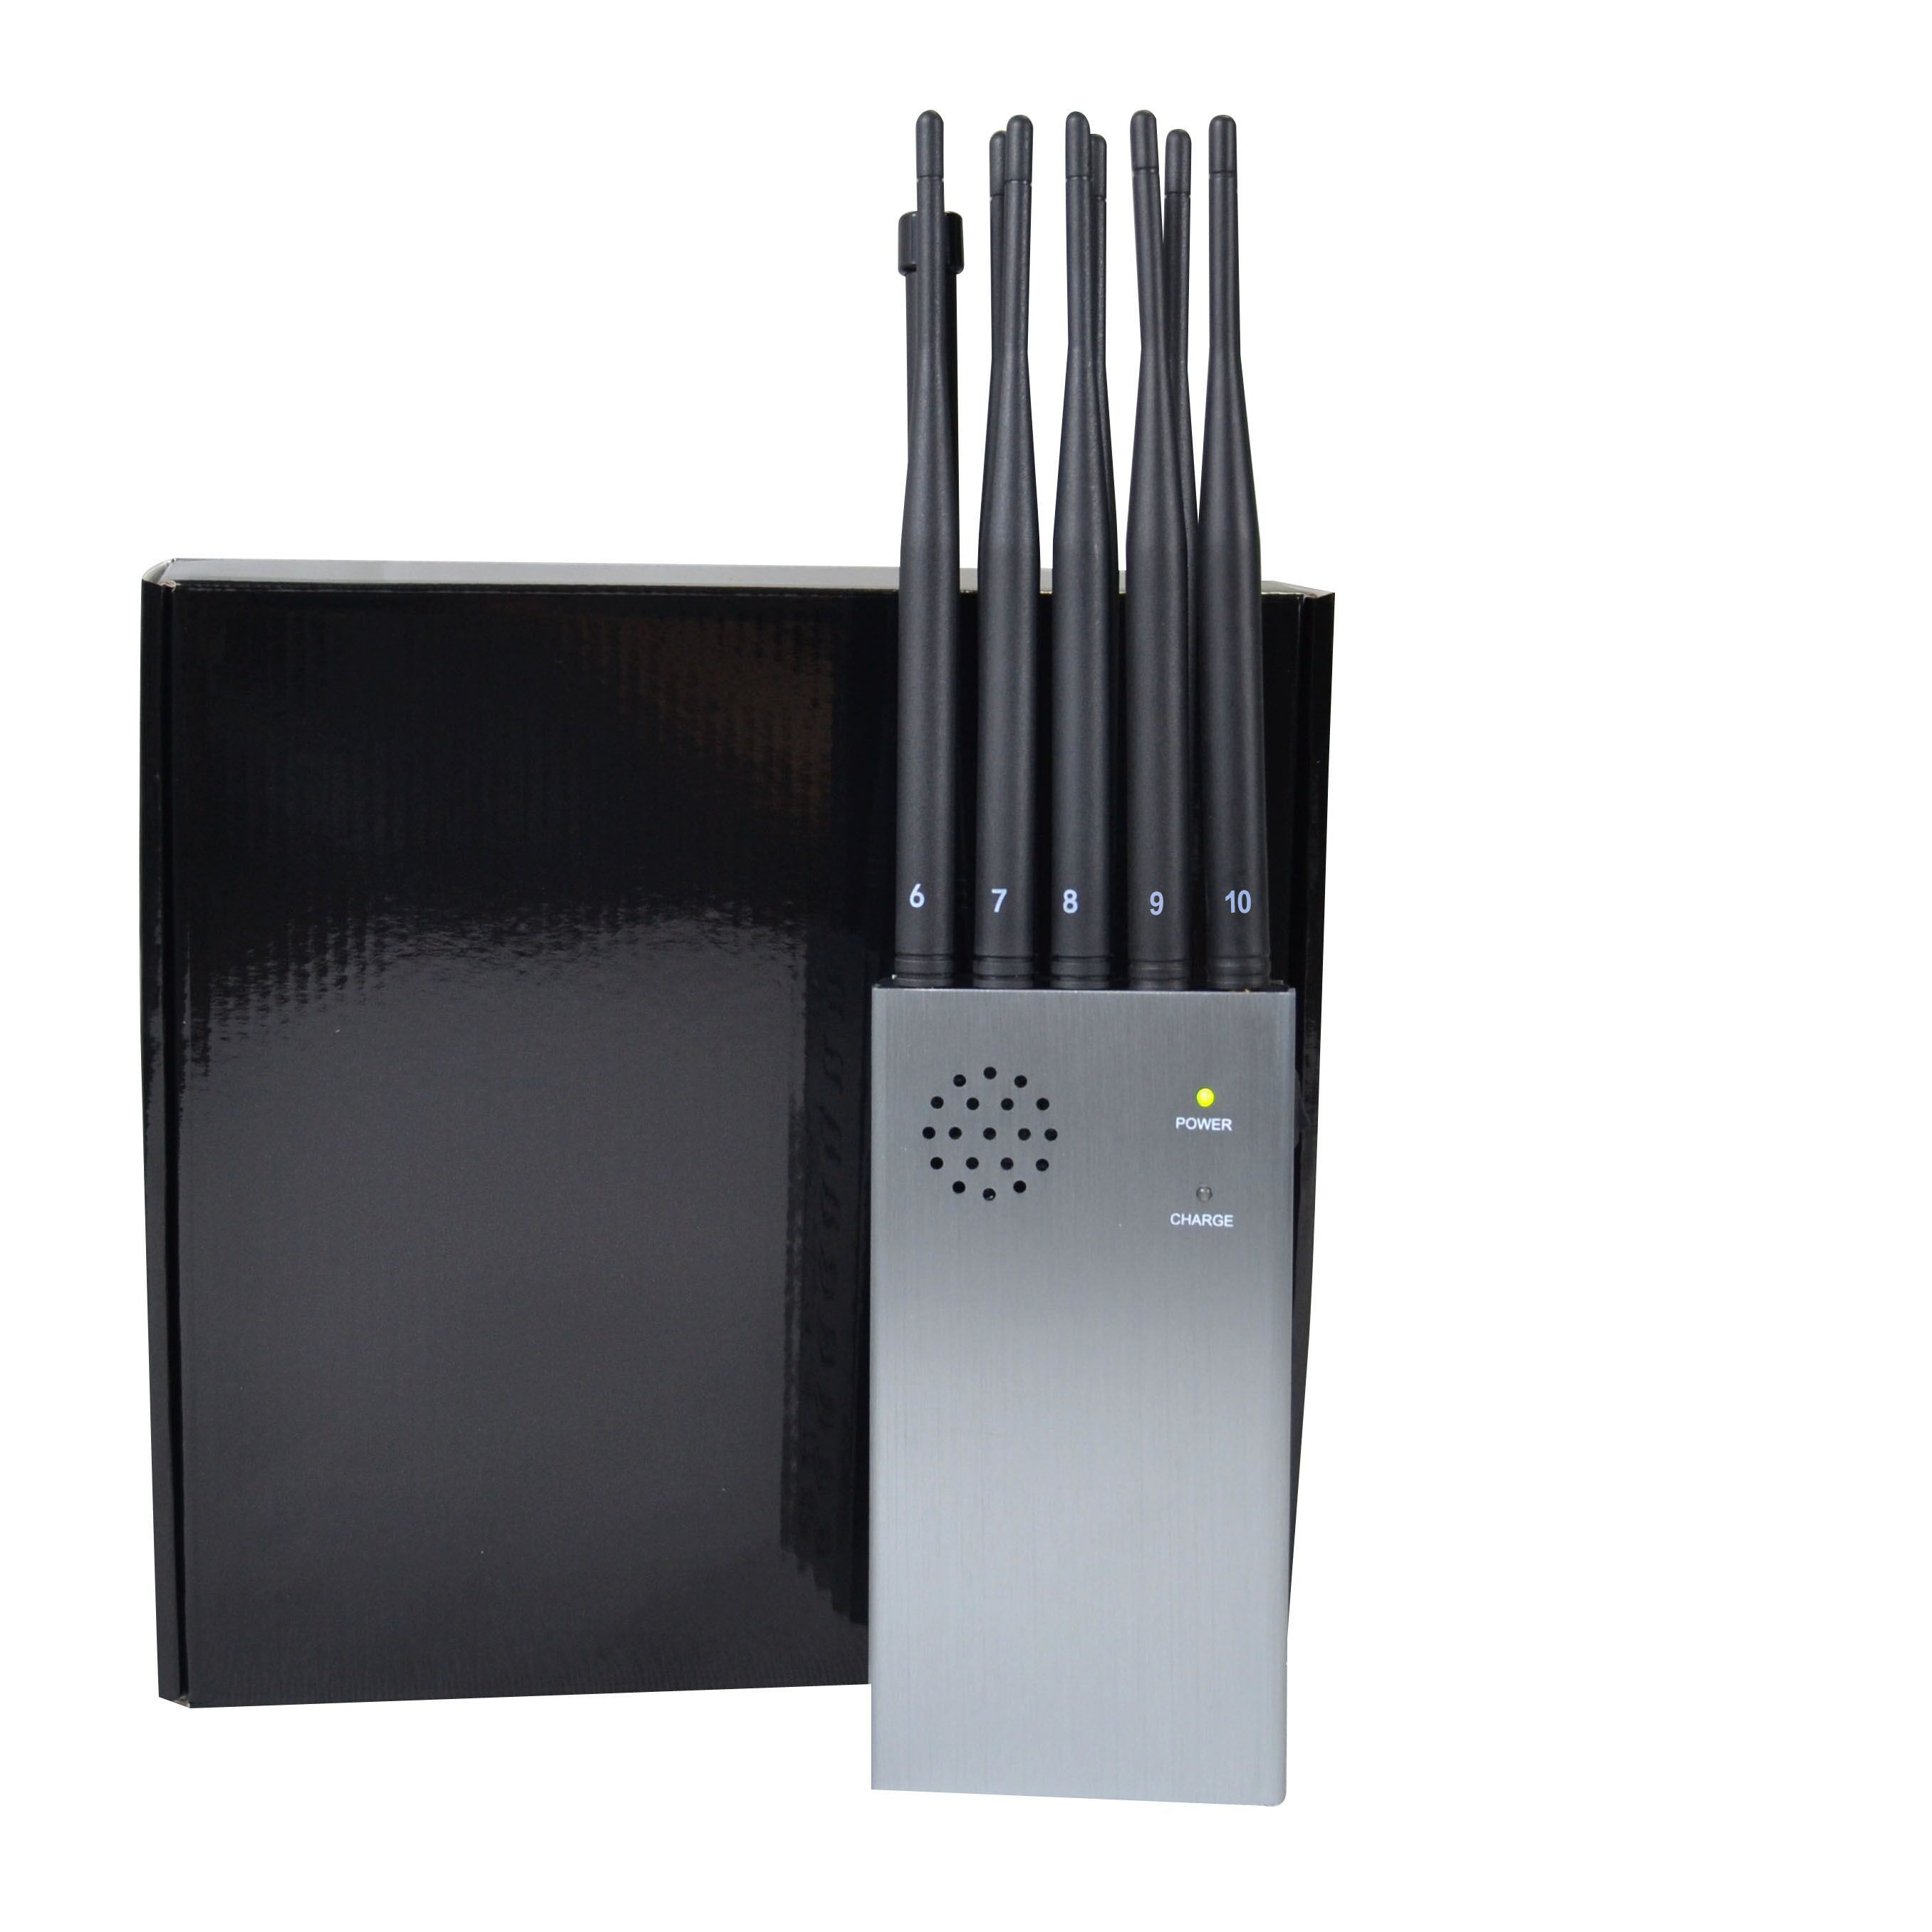 phone jammer china explosion - China Power King Jammers of Cpjp10 with 8000mA 2g 3G 4G 5g Remote Control Jammers for 2g 3G 4G 5g Lojack - China 8000mA Battery Jammer, Large Volume Power Signal Blocker